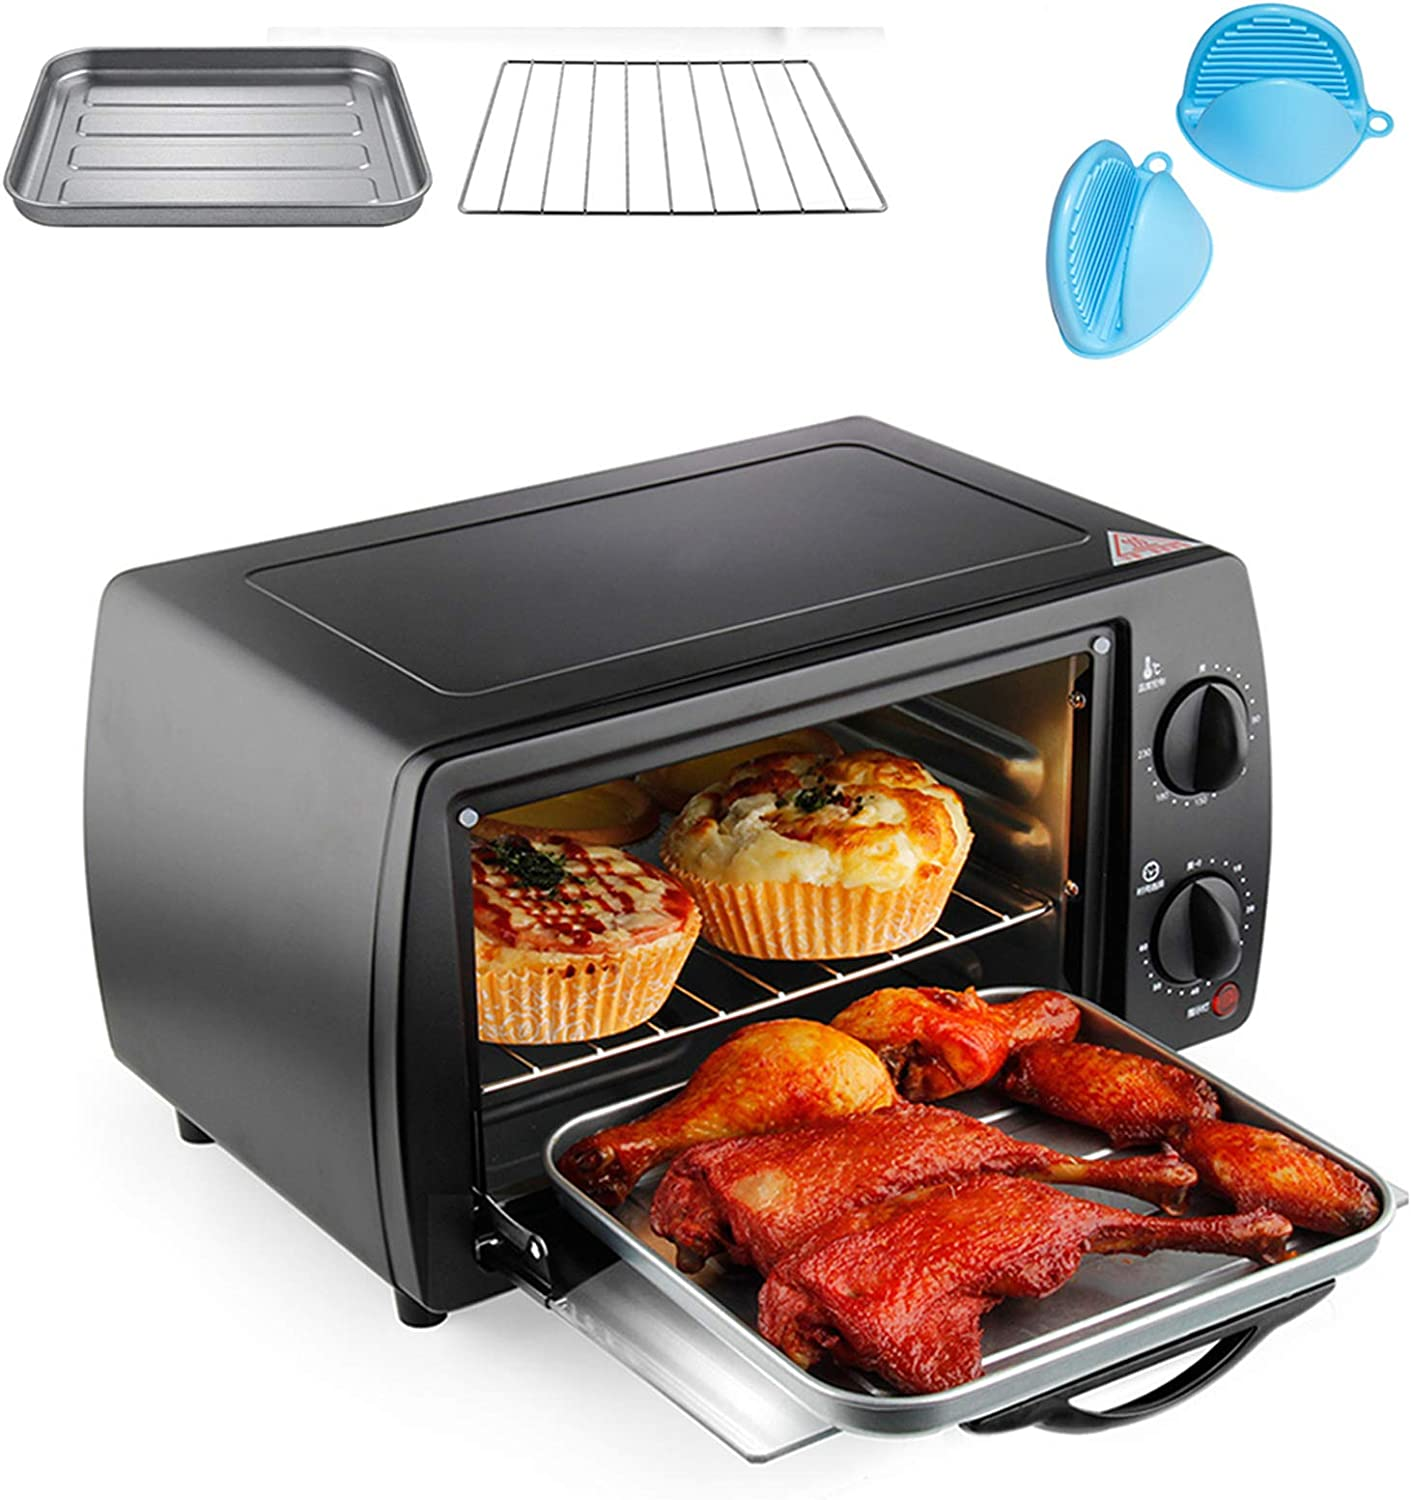 Tellgoy Air Fryer Toaster Oven, Toaster Oven Cooker, All in One Countertop Oven for Air Frying, Roasting, Defrosting Dehydrating,Black